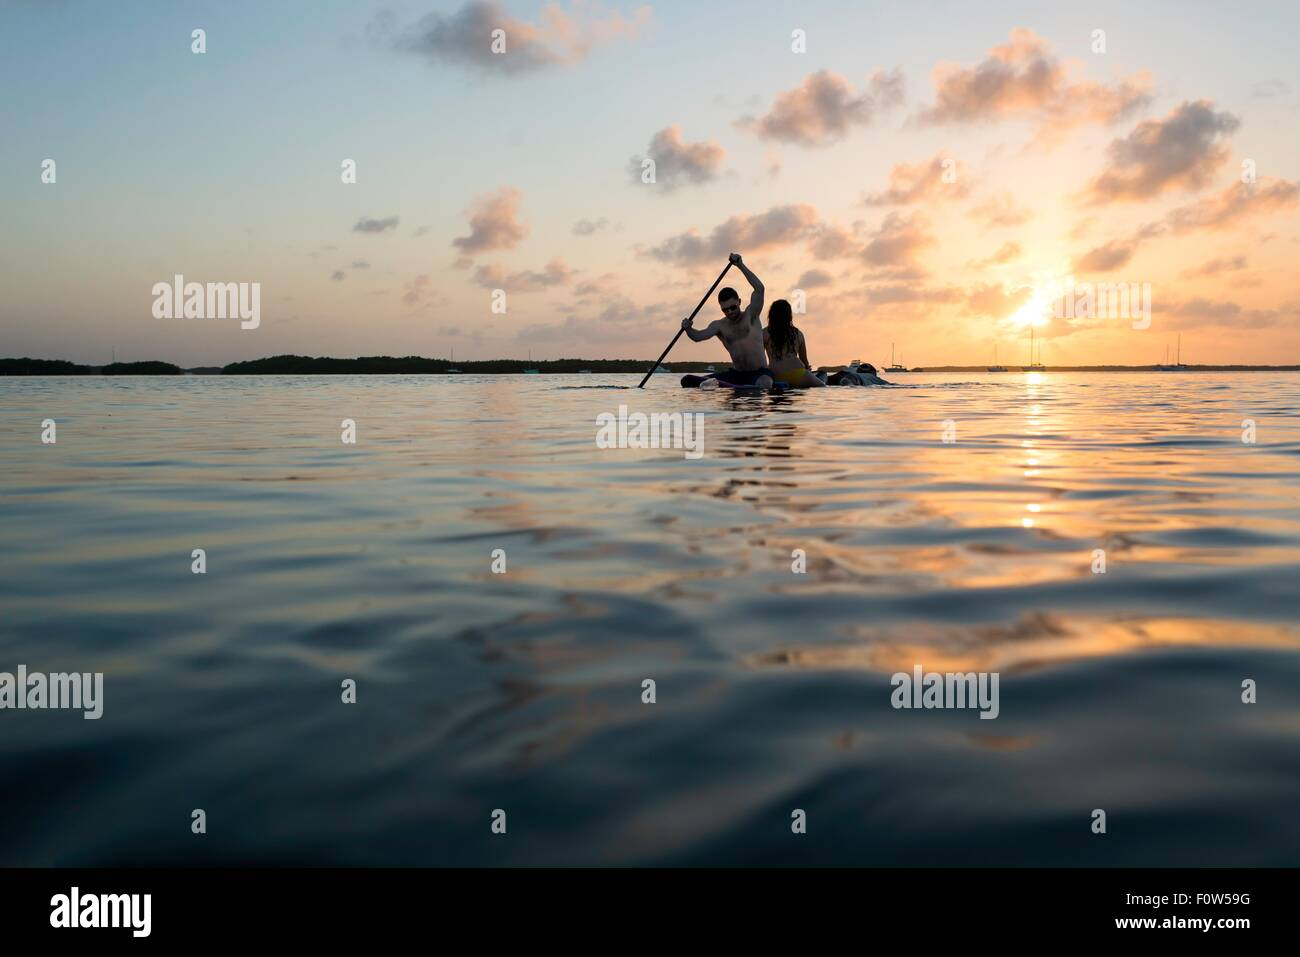 Silhouetted view of three adult friends on paddleboard at sunset, Islamorada, Florida, USA - Stock Image